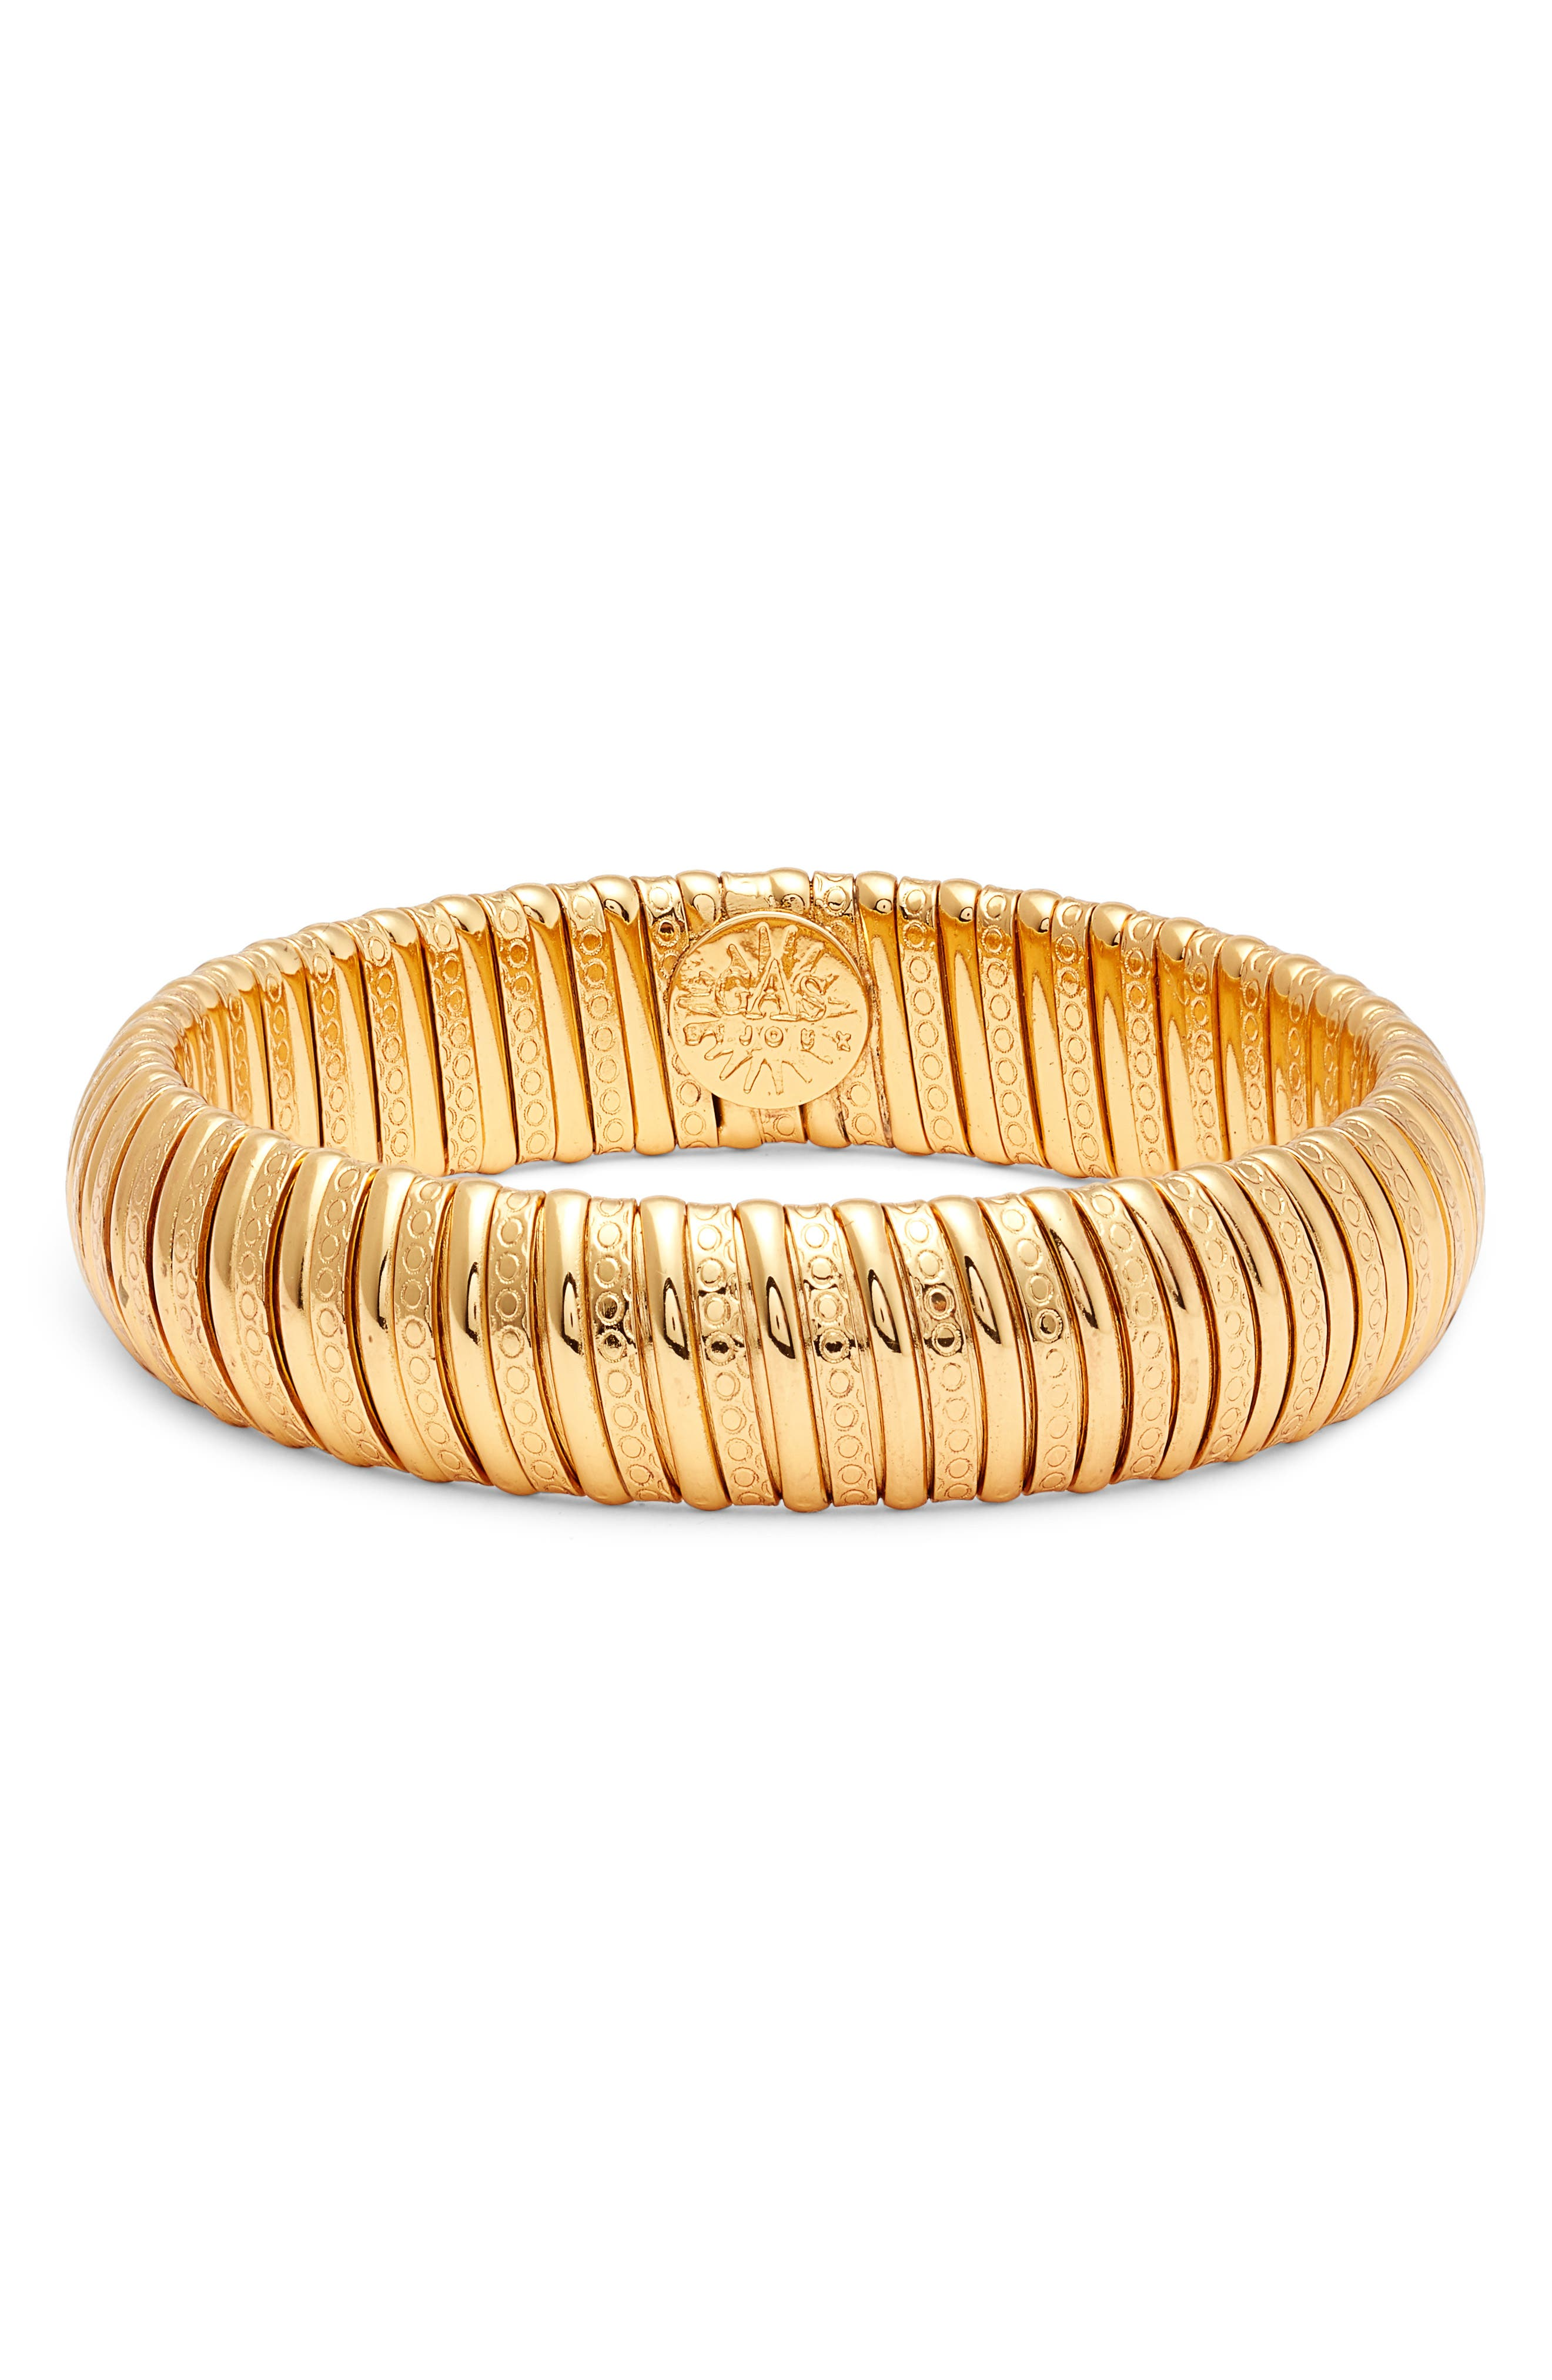 Breva Bangle Bracelet,                             Main thumbnail 1, color,                             Gold